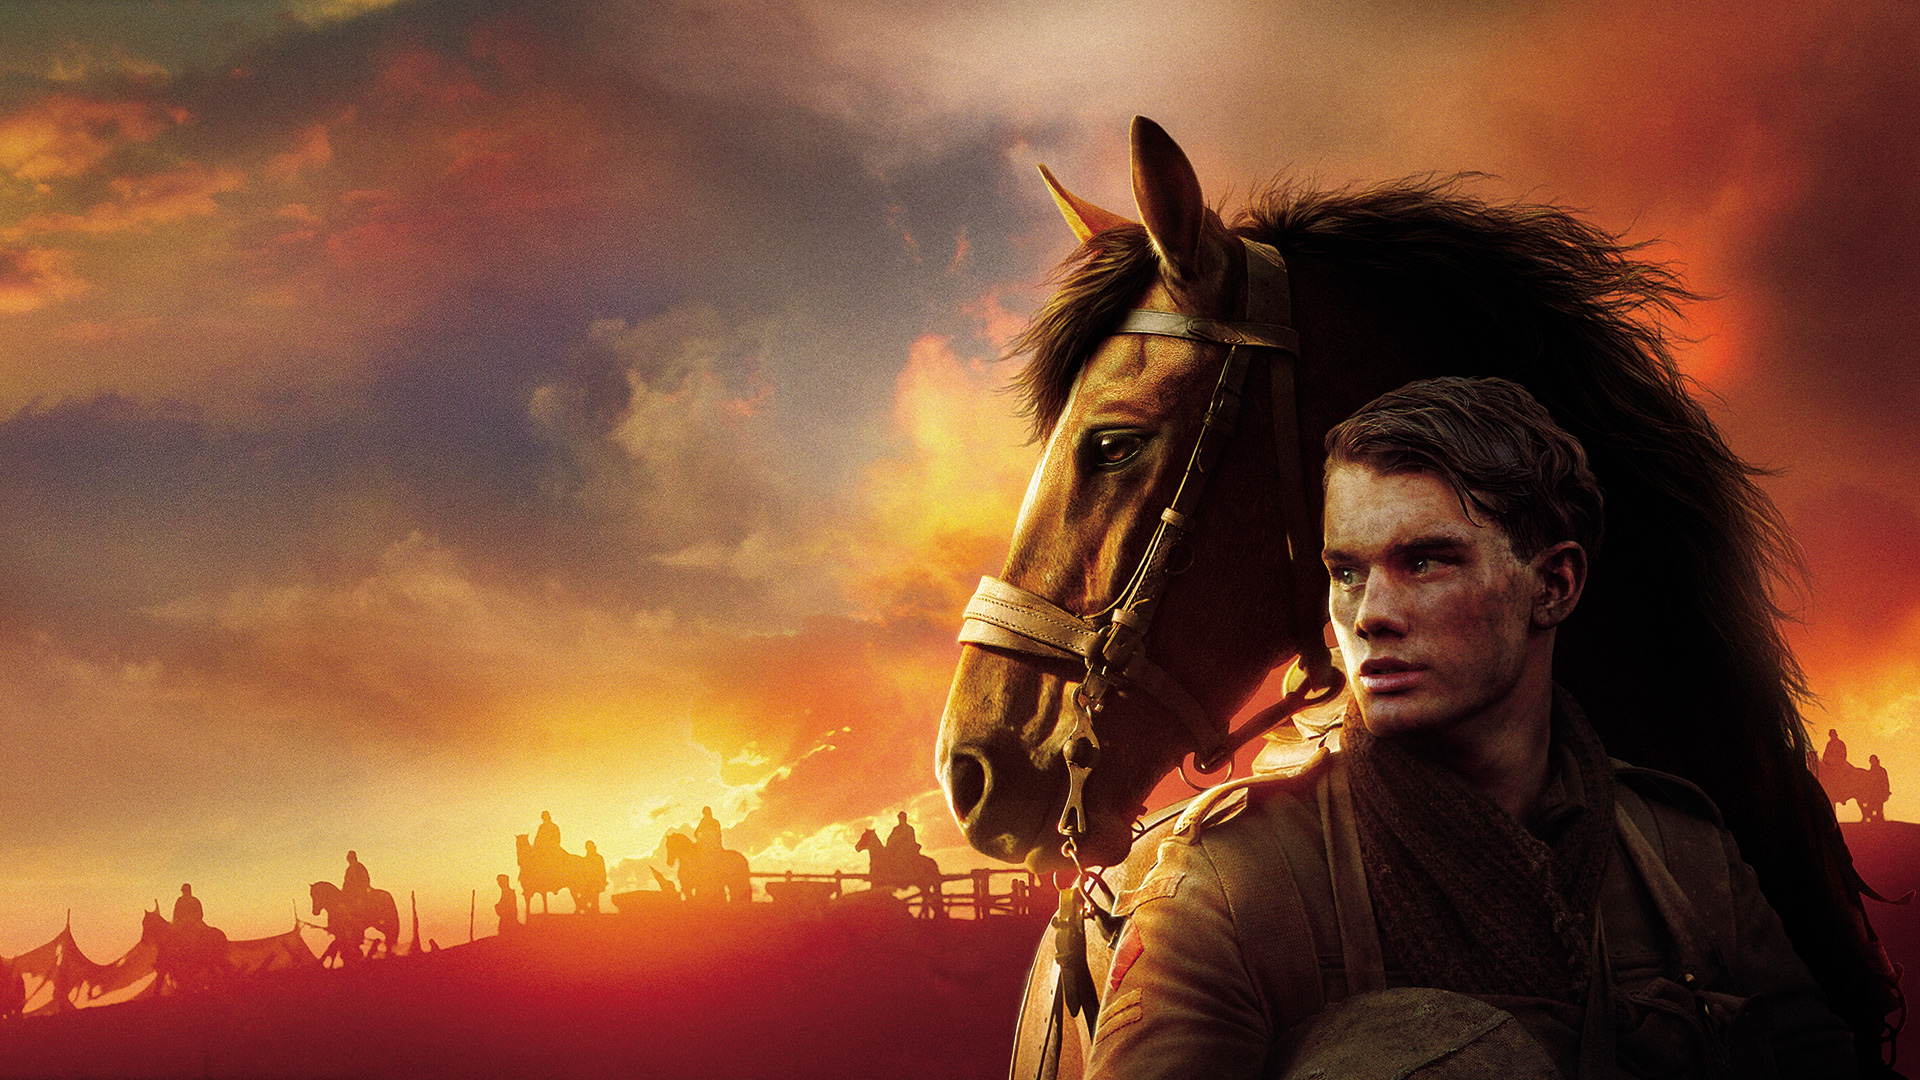 Movie War Horse Wallpaper Resolution 1920x1080 Id 1022276 Wallha Com